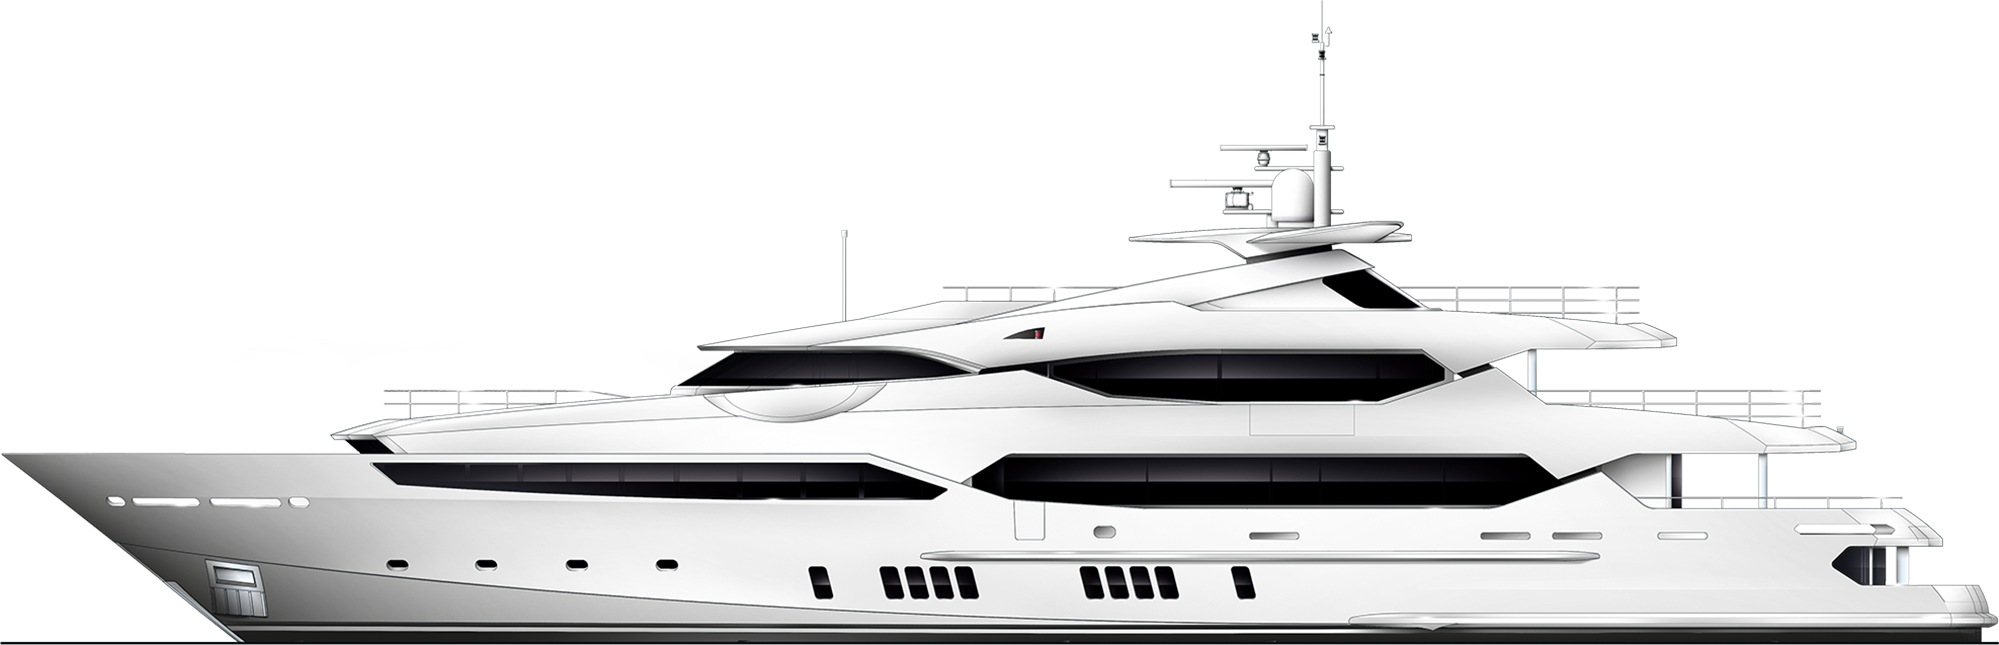 Yacht PNG Transparent Yacht.PNG Images. | PlusPNG